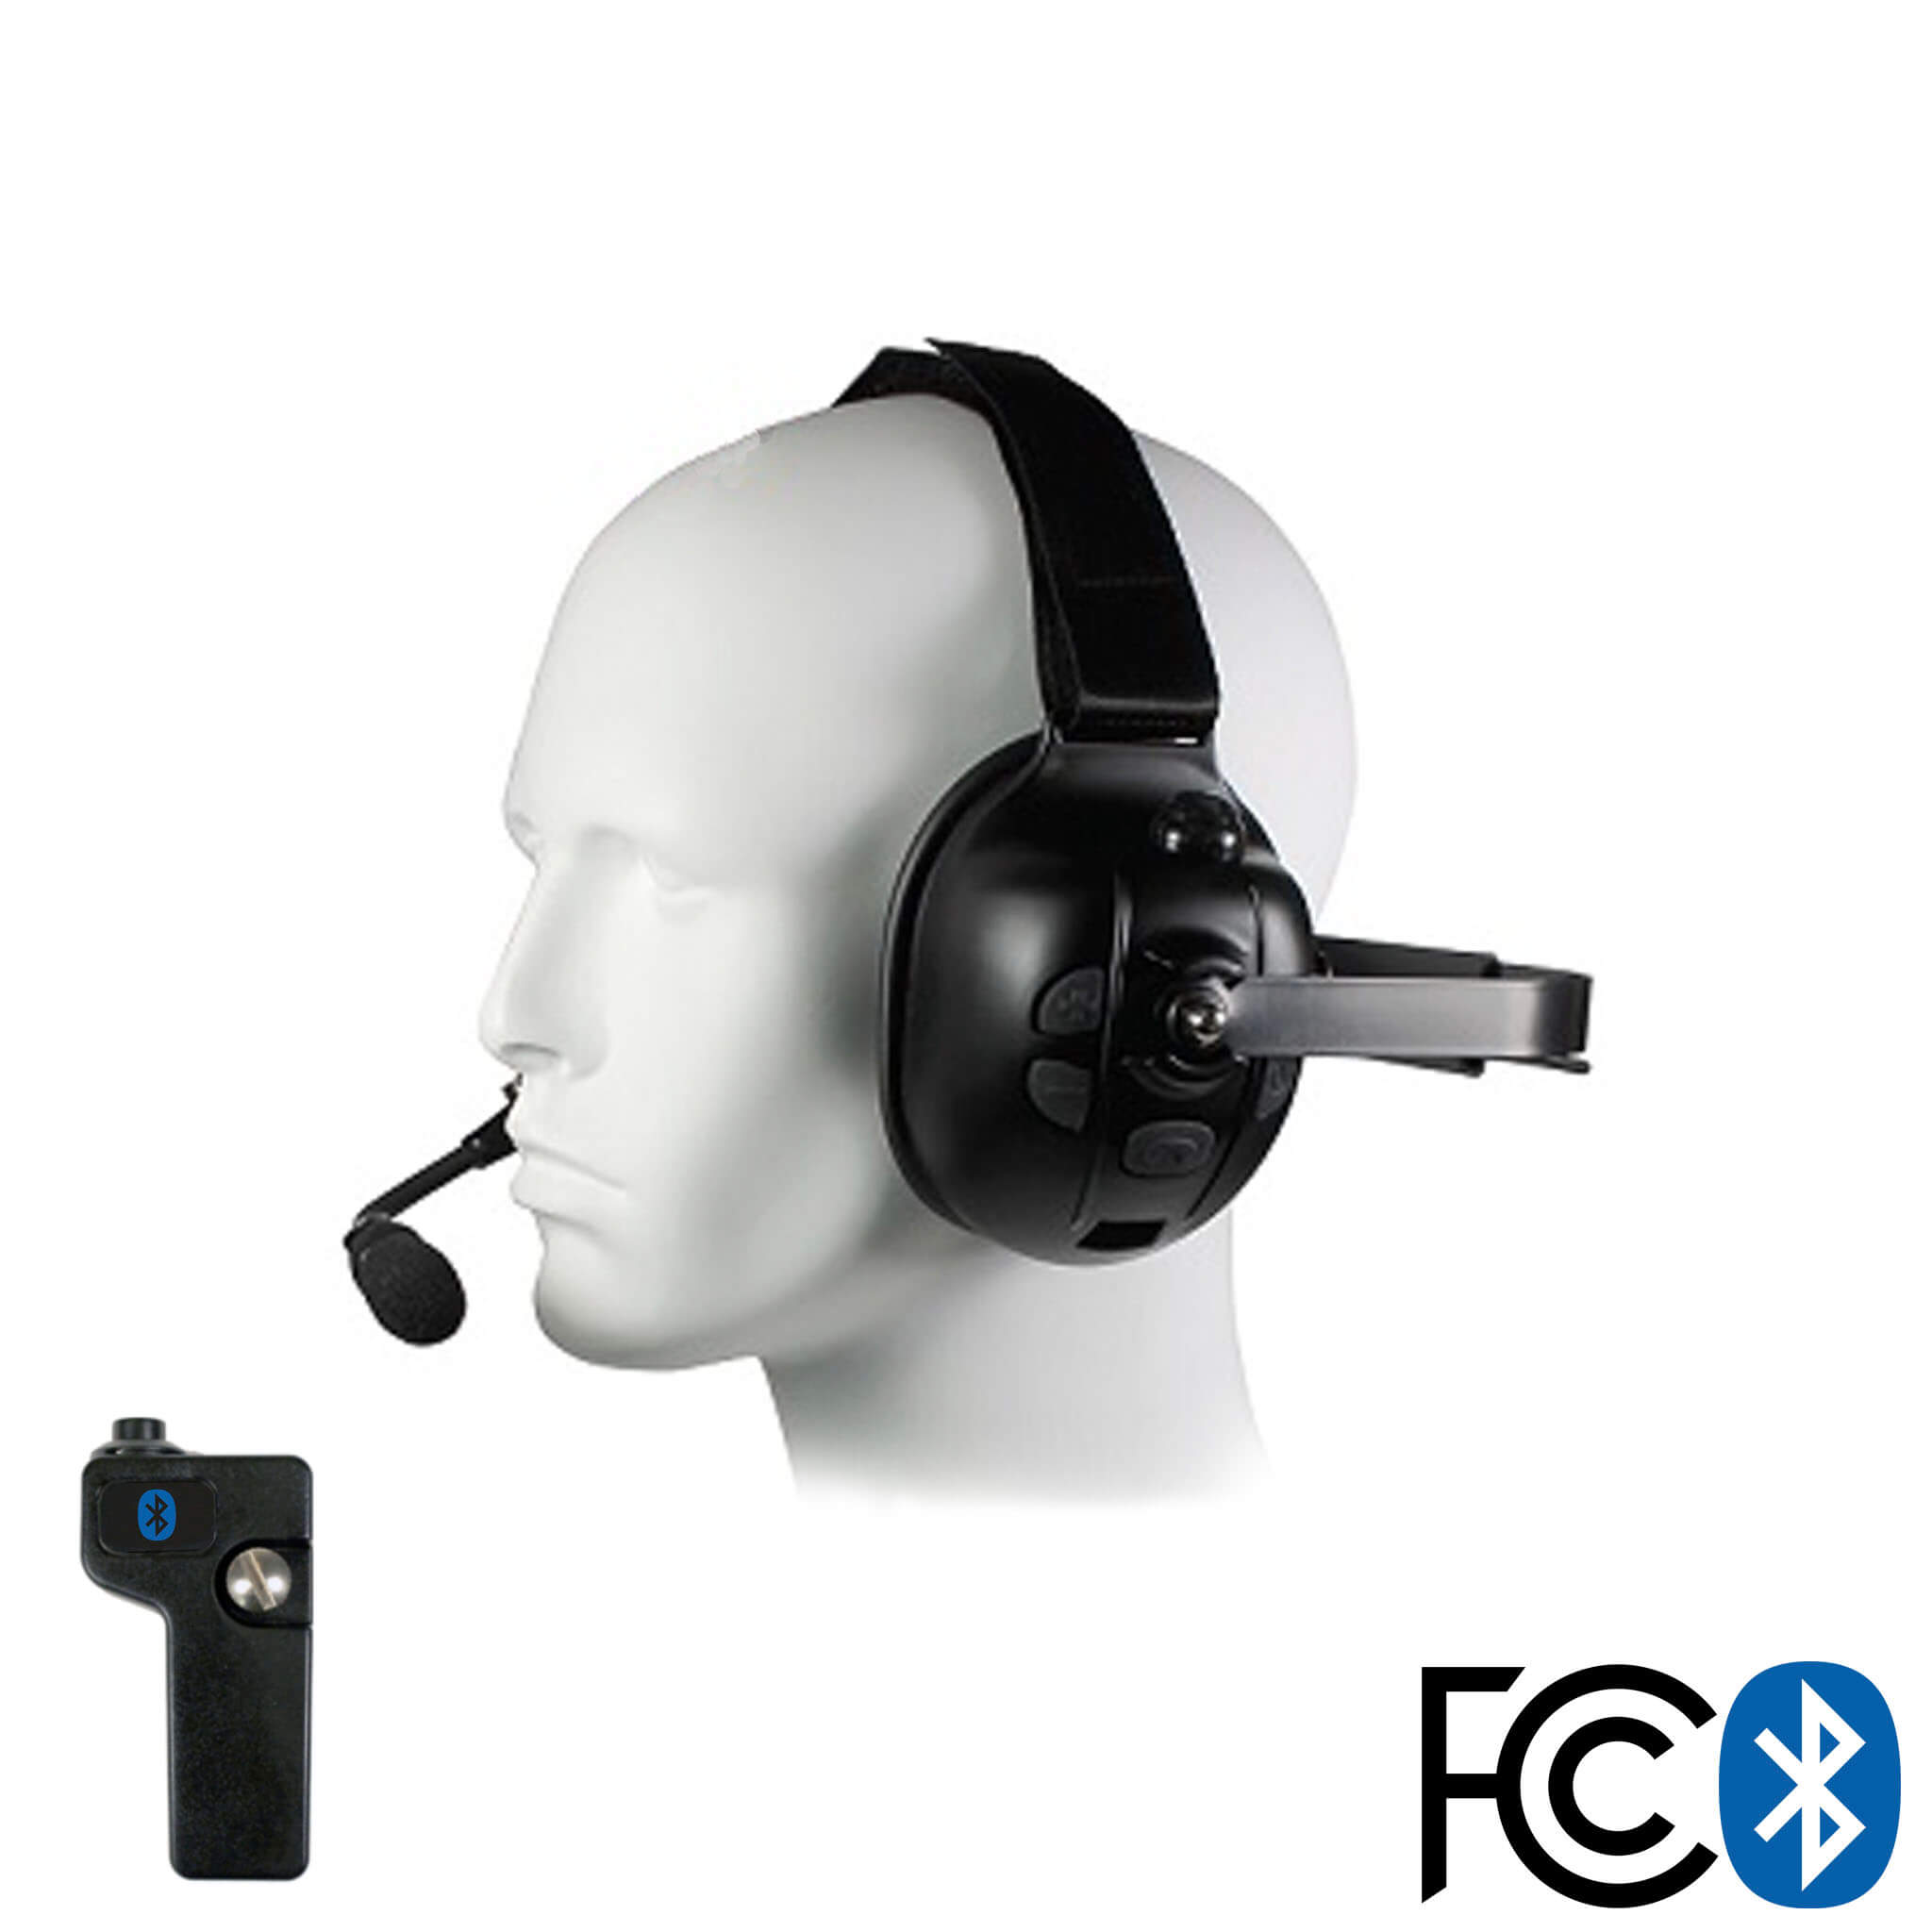 Bluetooth Headset Radio Adapter Kit For Racing Other Applications Comm Gear Supply